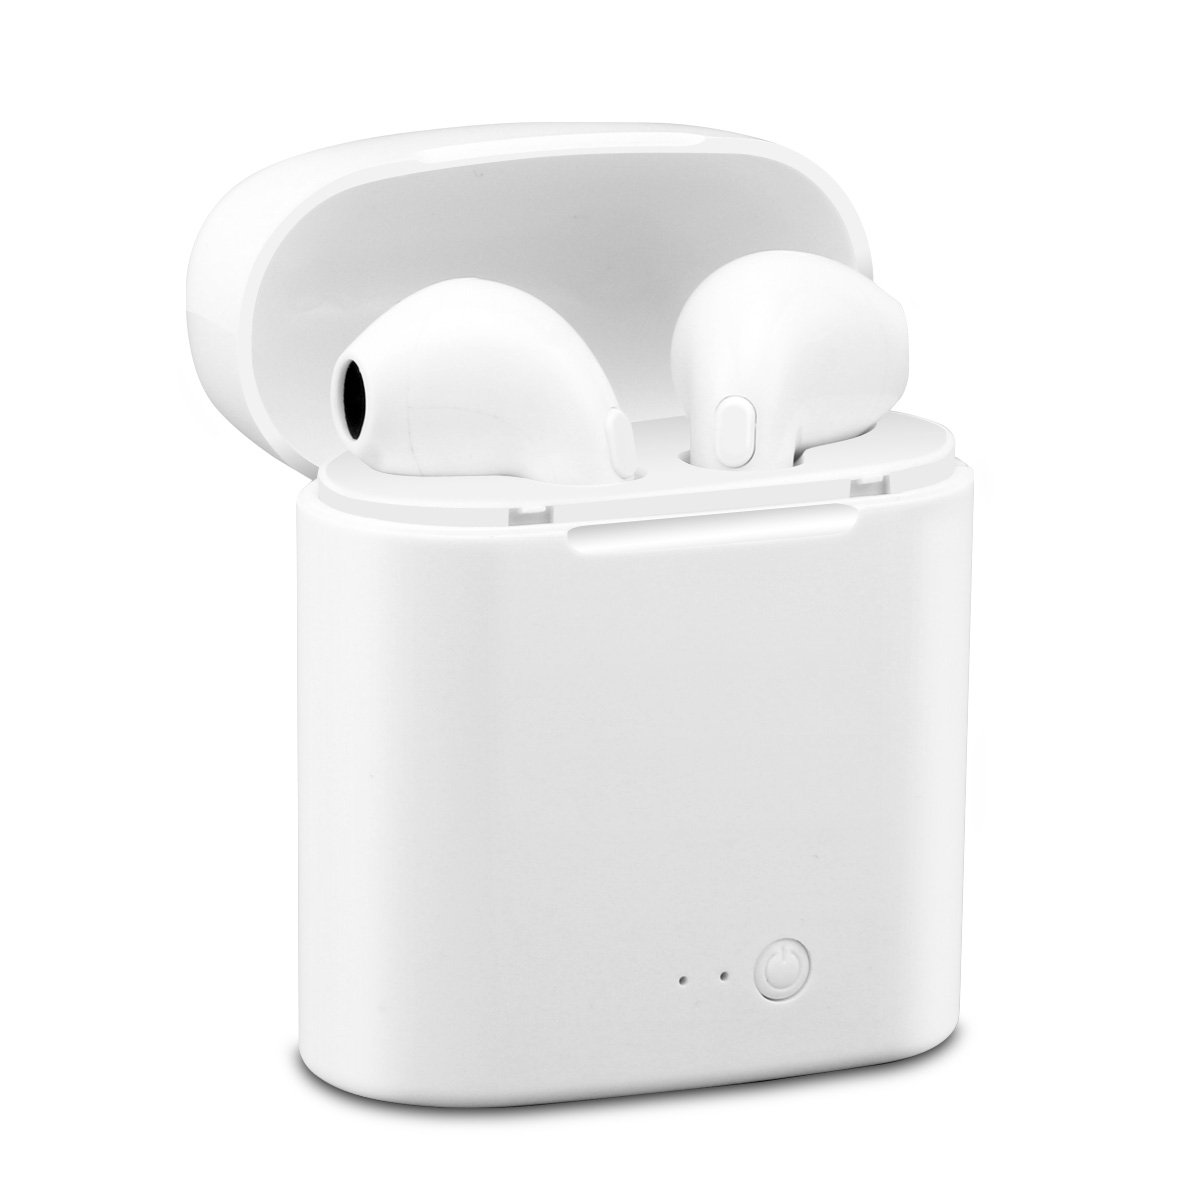 Wireless Headphones, Silipower Bluetooth Headsets, Bluetooth Earbuds, True Wireless Earbuds Stereo In-Ear Earpieces with 2 Built-in Mic and Charging Case Earphones Compatible with Smartphones